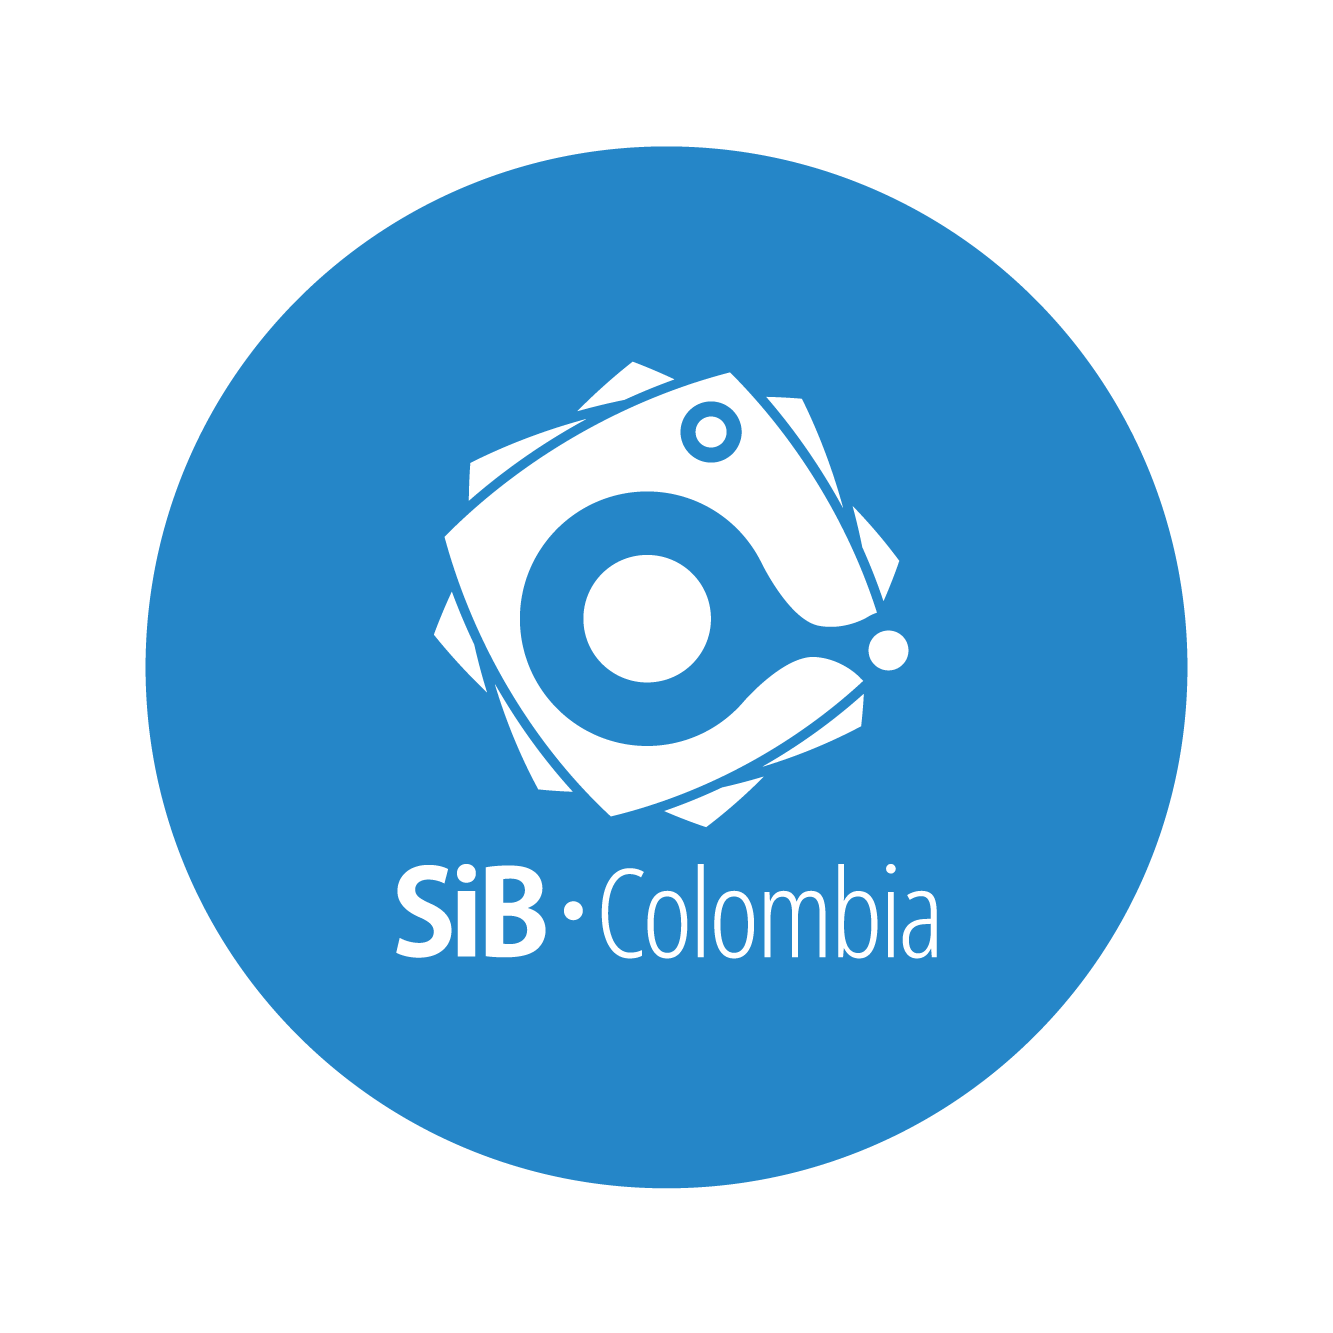 sib-colombia-28